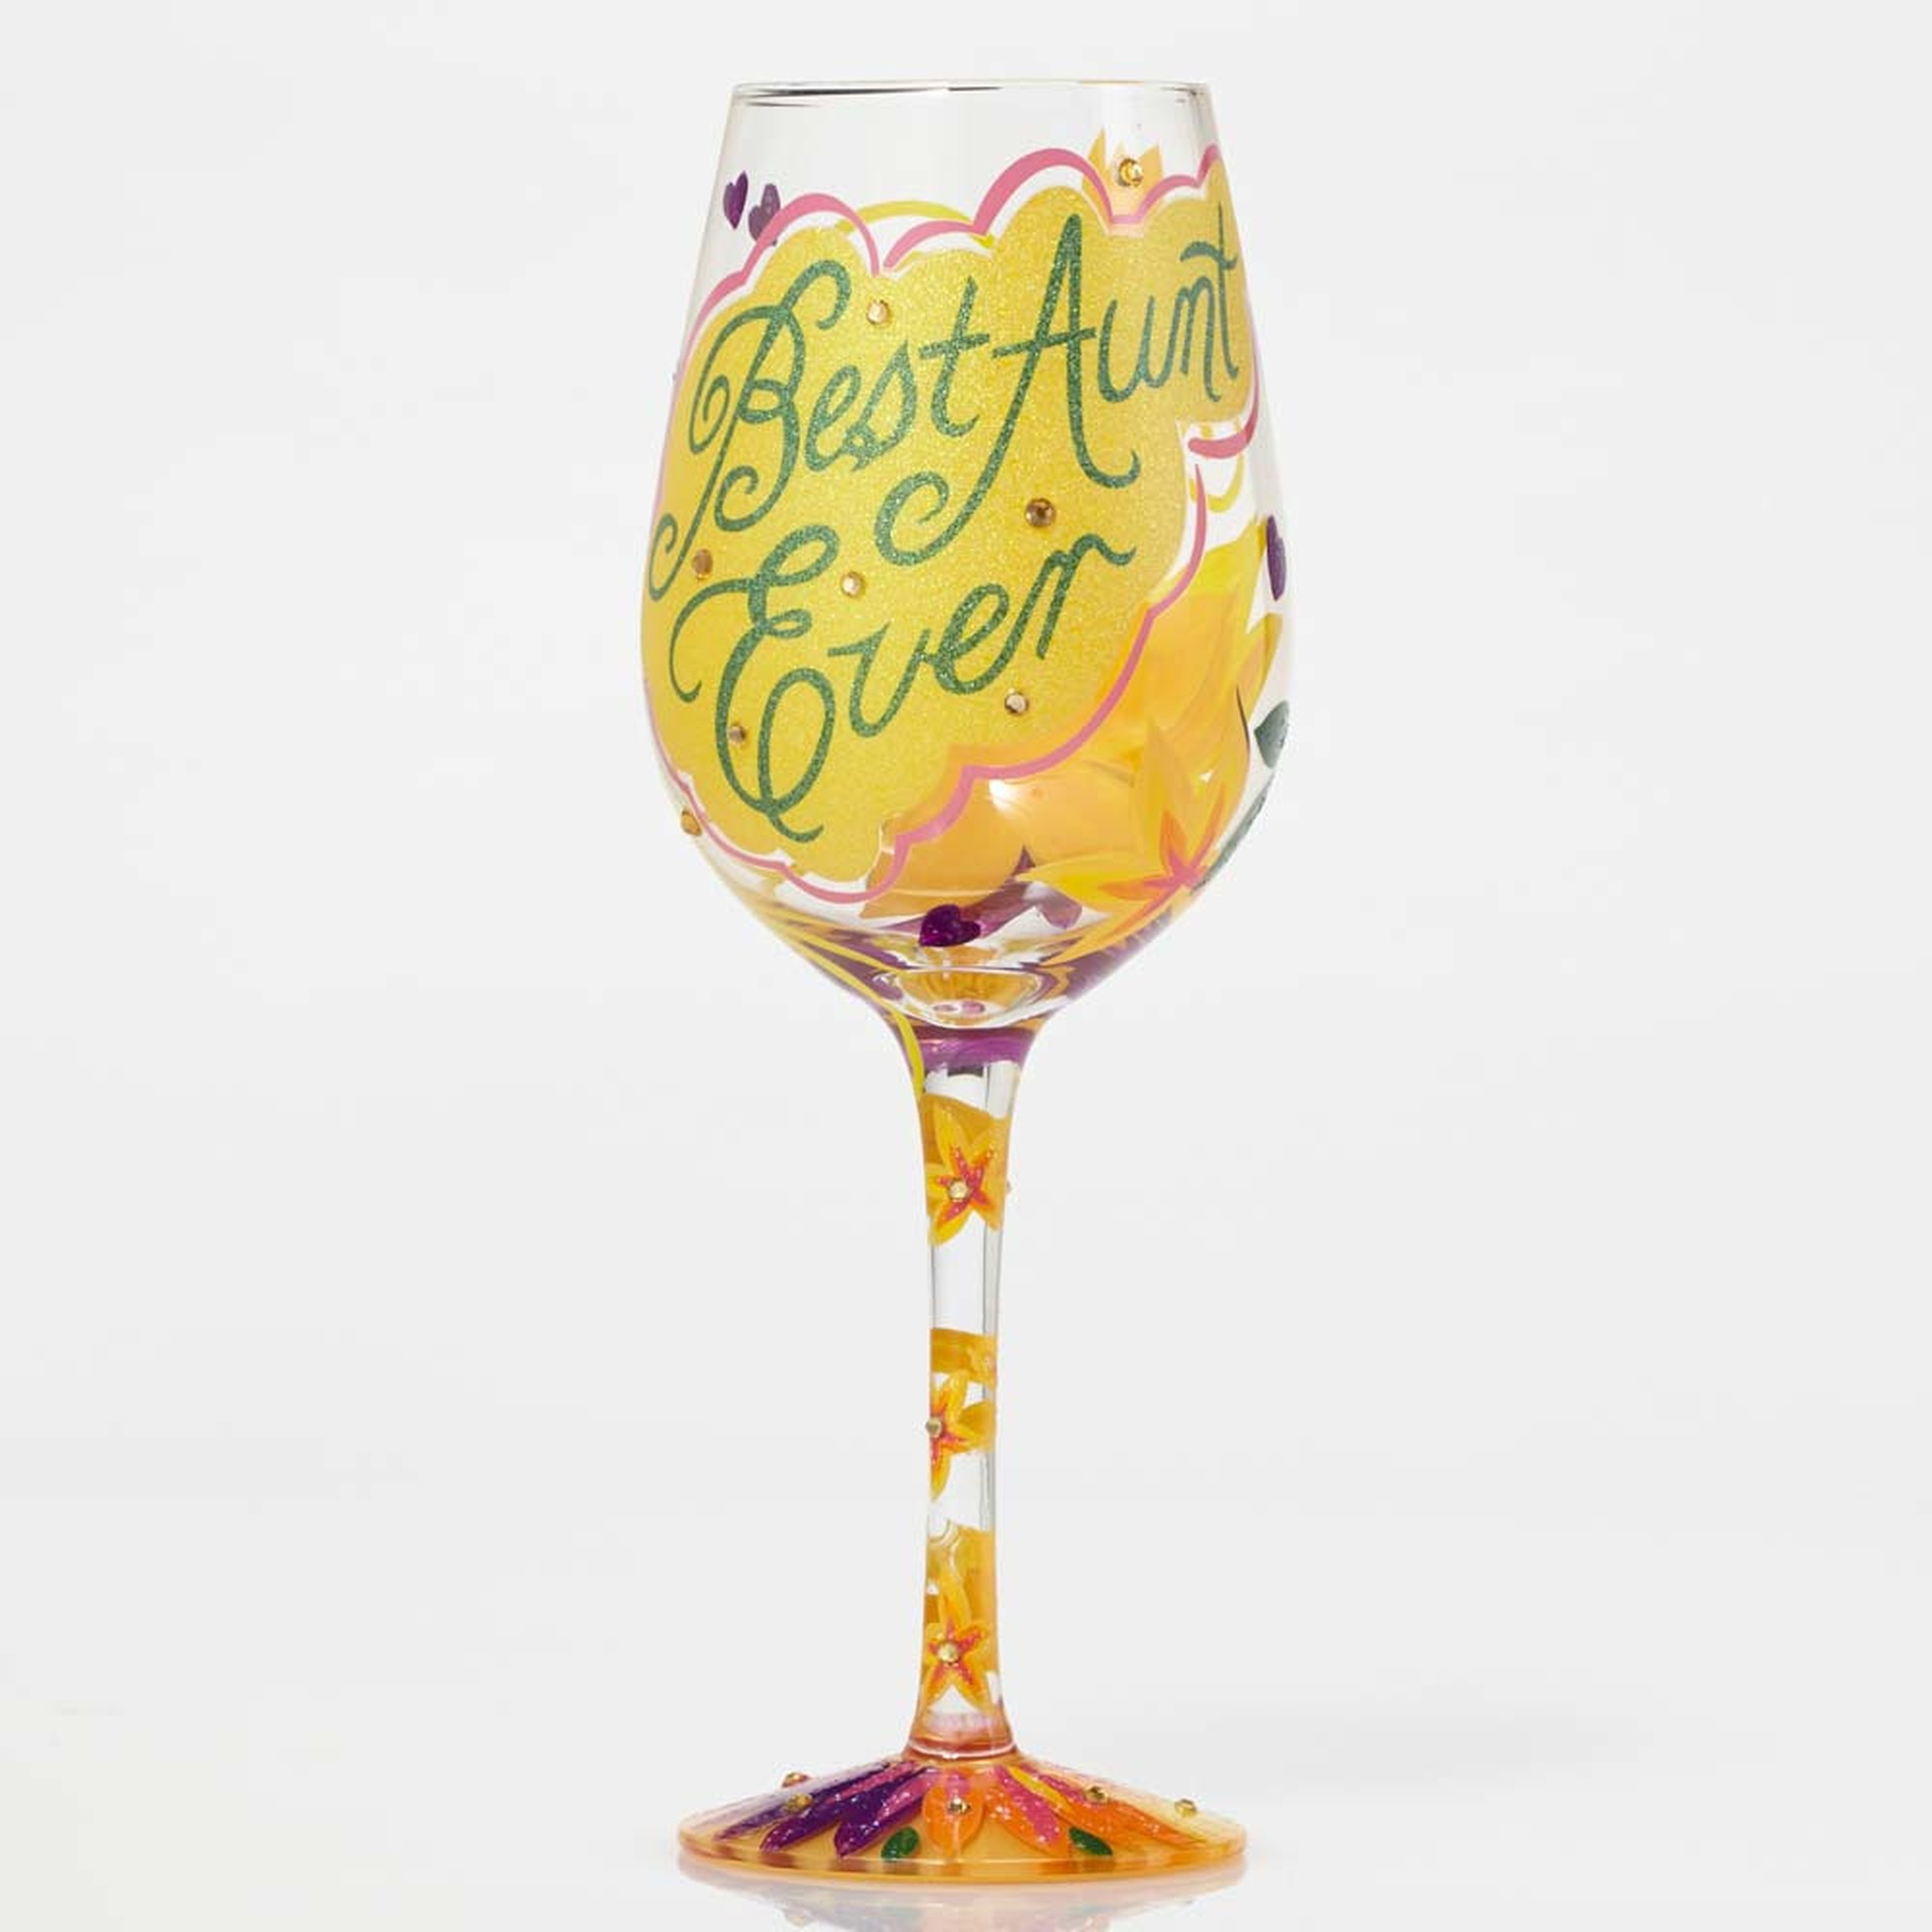 Best Aunt Ever - Wine Glass